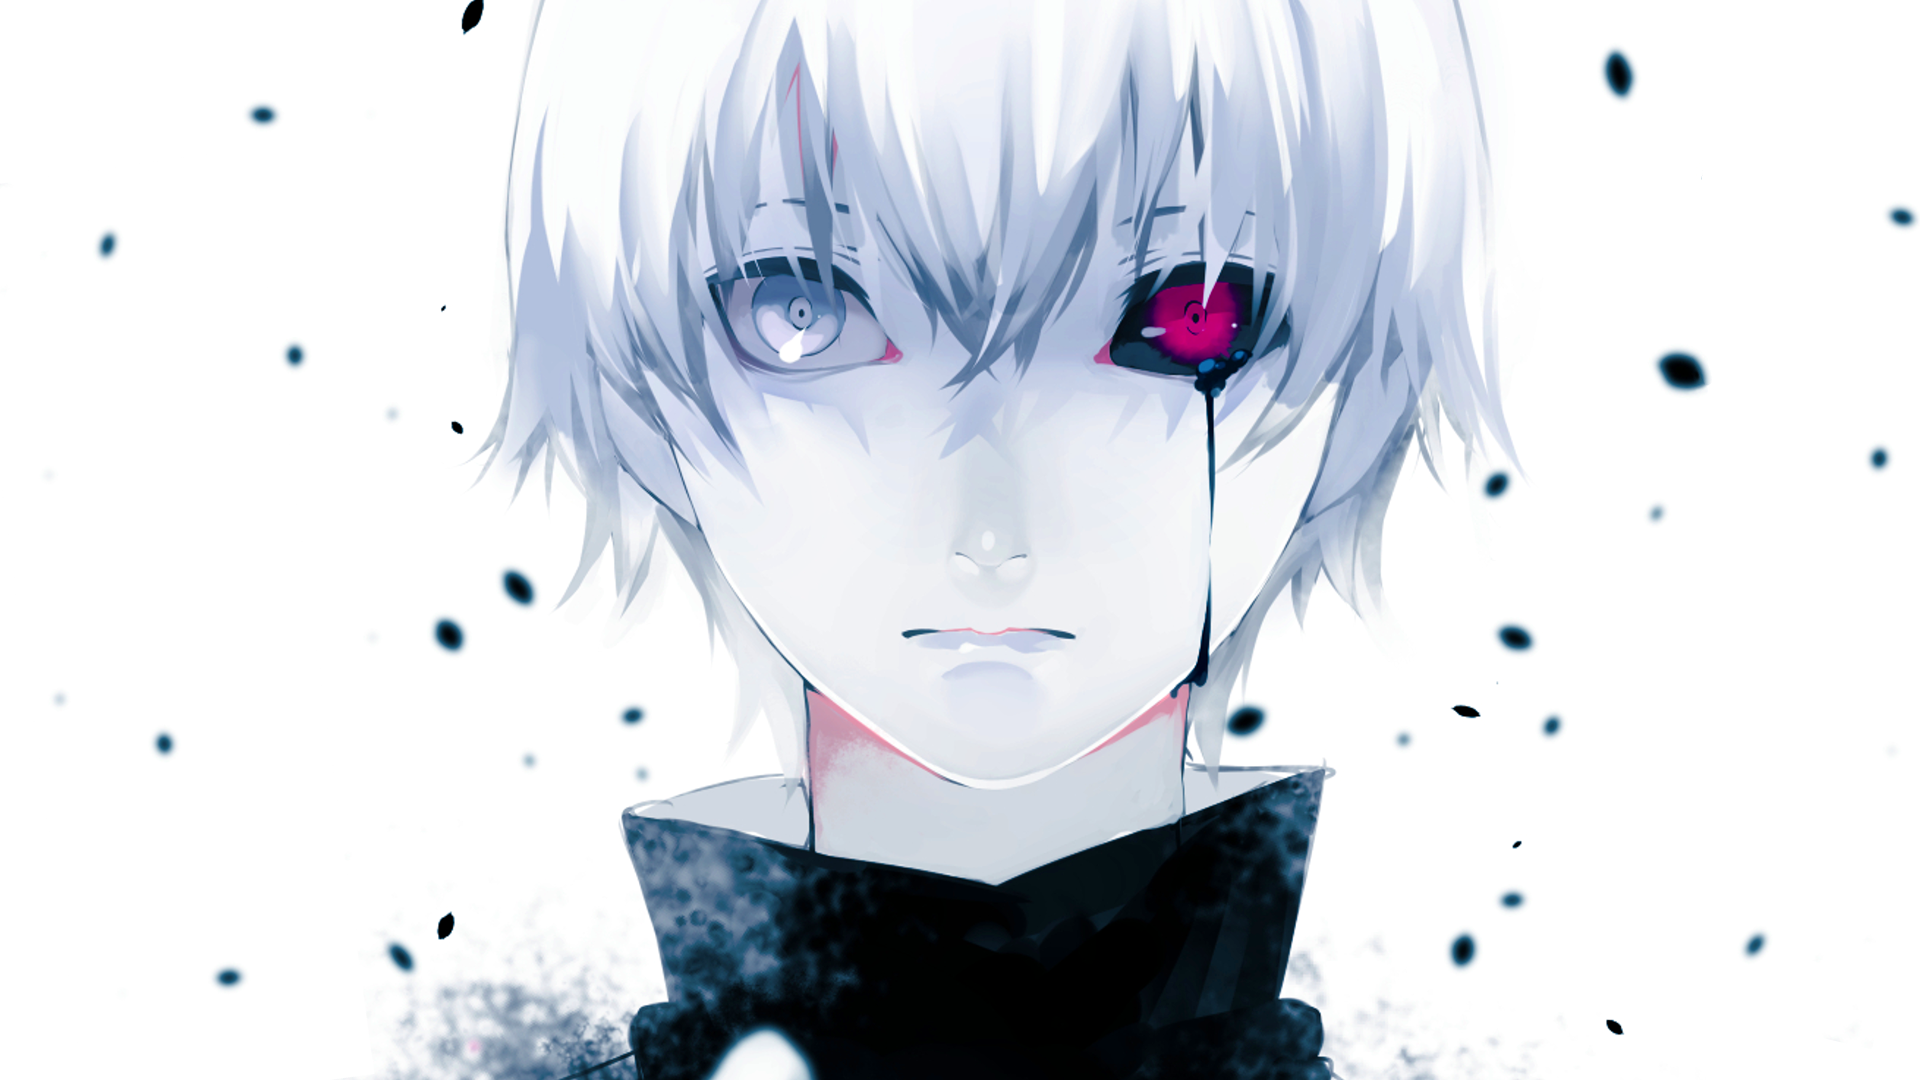 HD Wallpaper Of Kaneki KenTokyo Ghoul